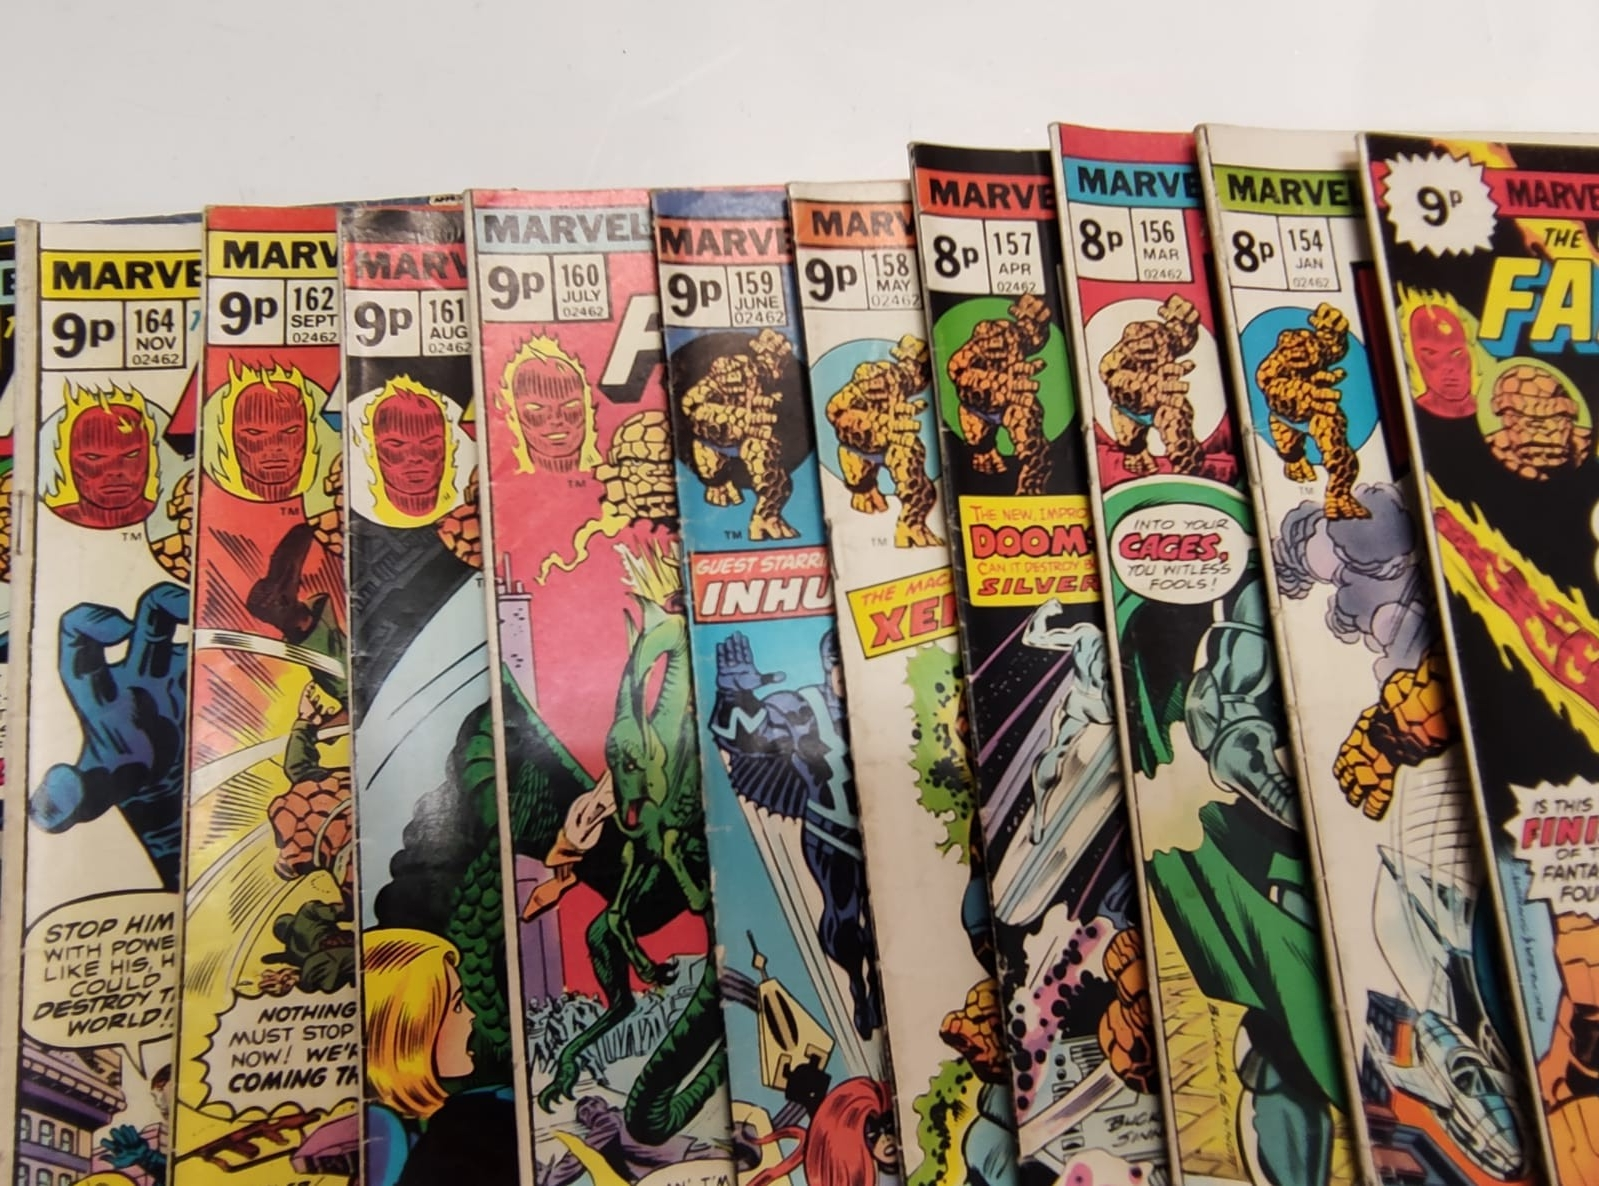 30x Marvel Fantastic four mid 1970s editions. Used, in good condition. - Image 5 of 17